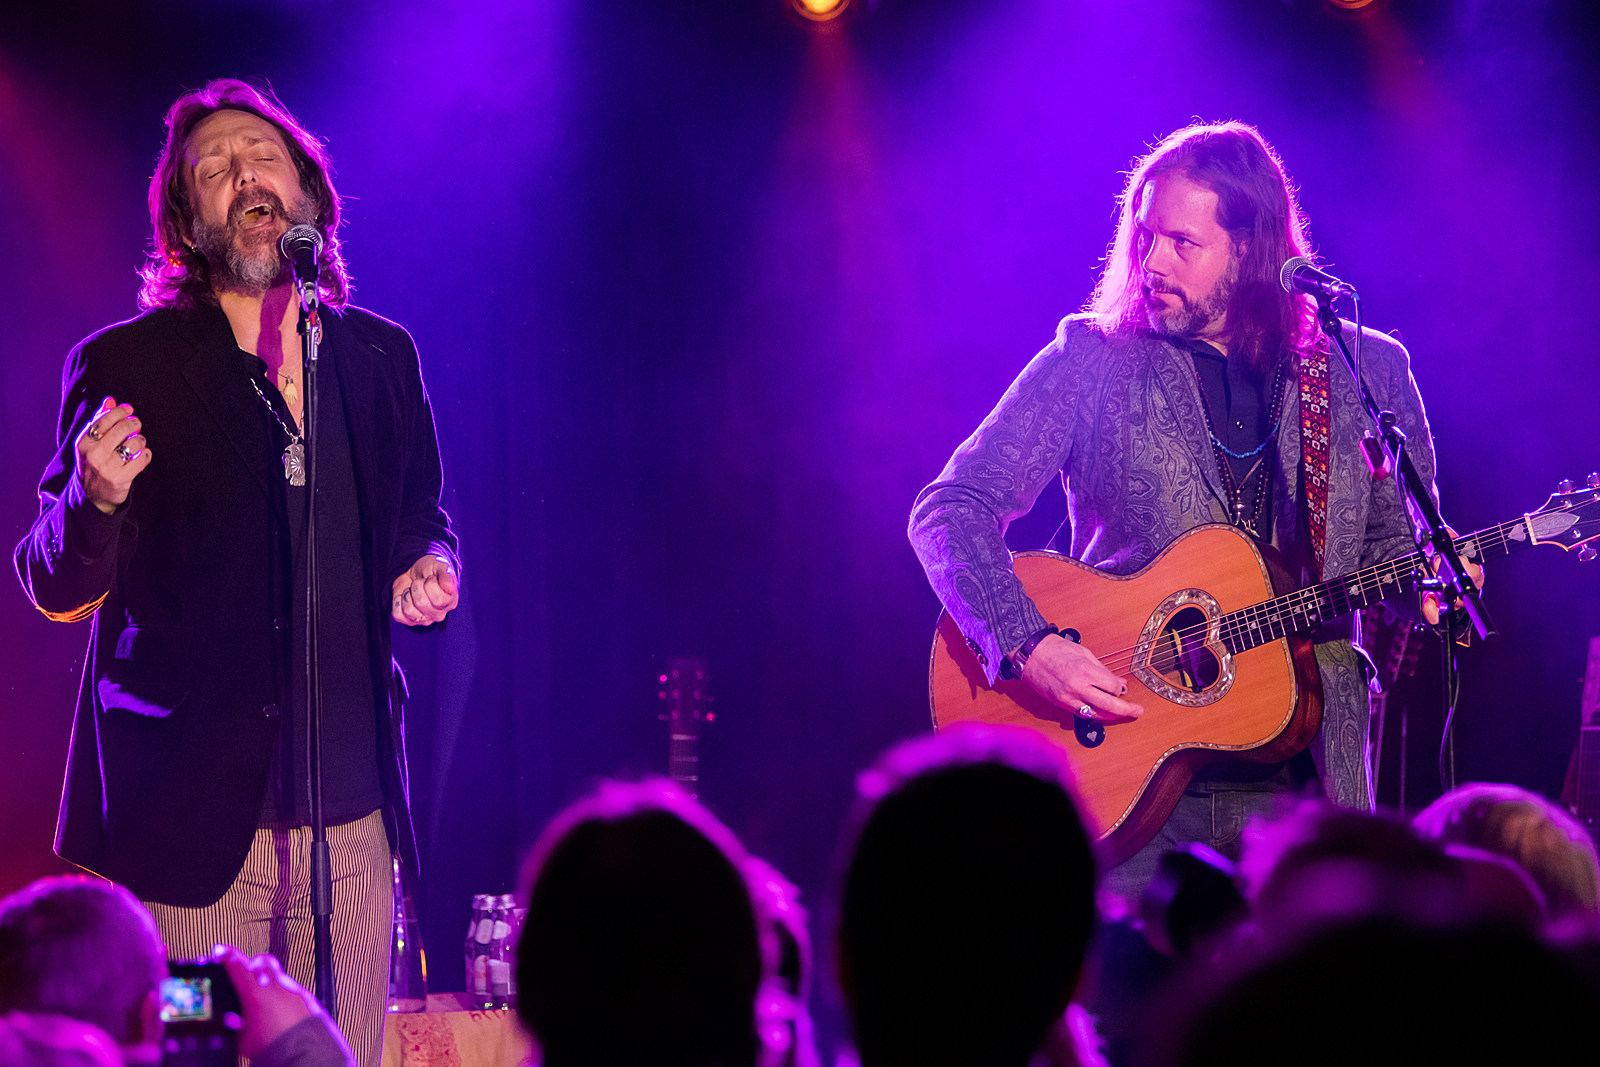 Why the Black Crowes Are 'Having Fun Playing' Again